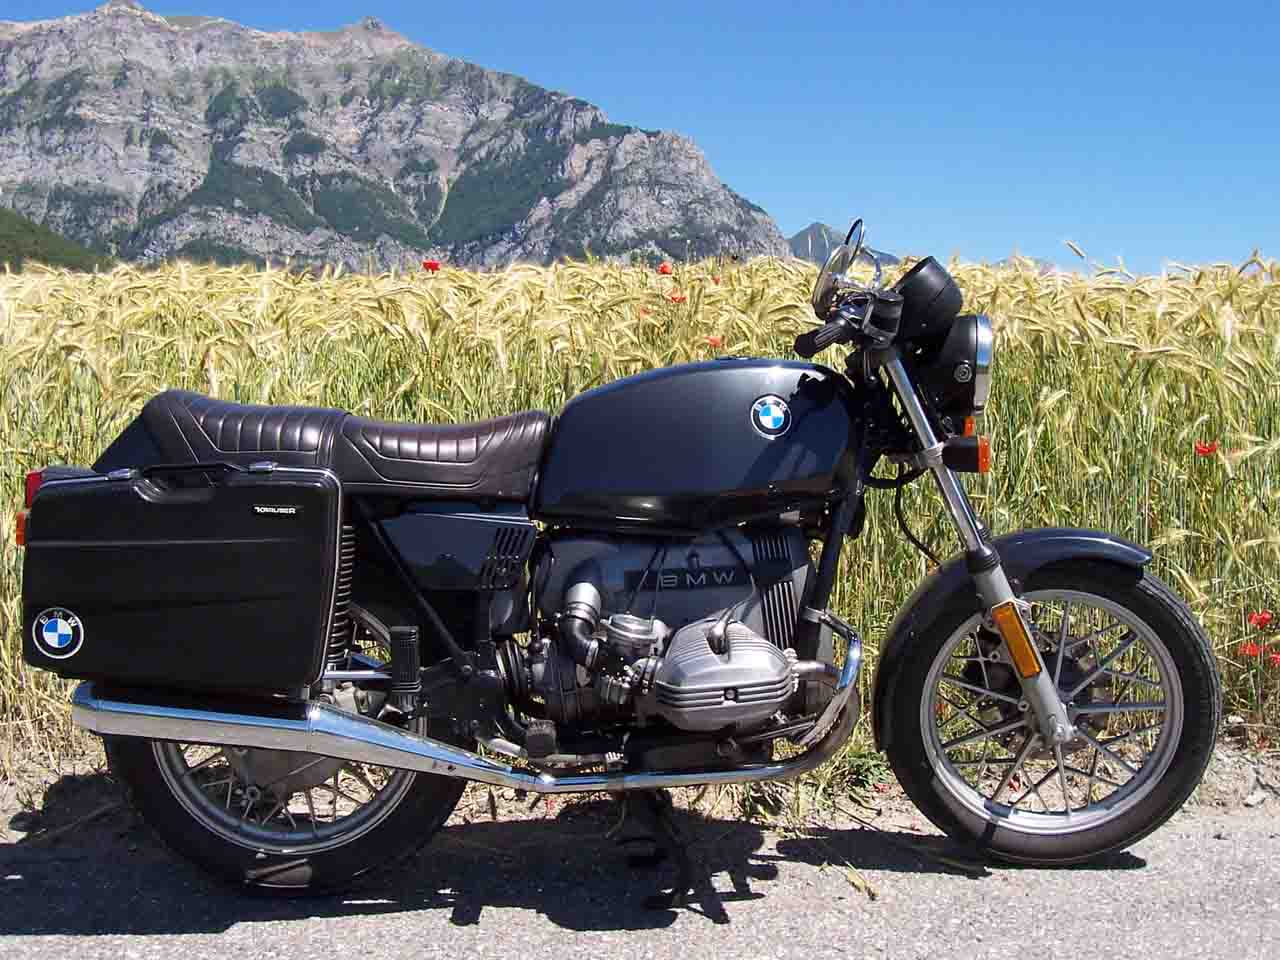 BMW R45 (reduced effect) 1985 images #77176